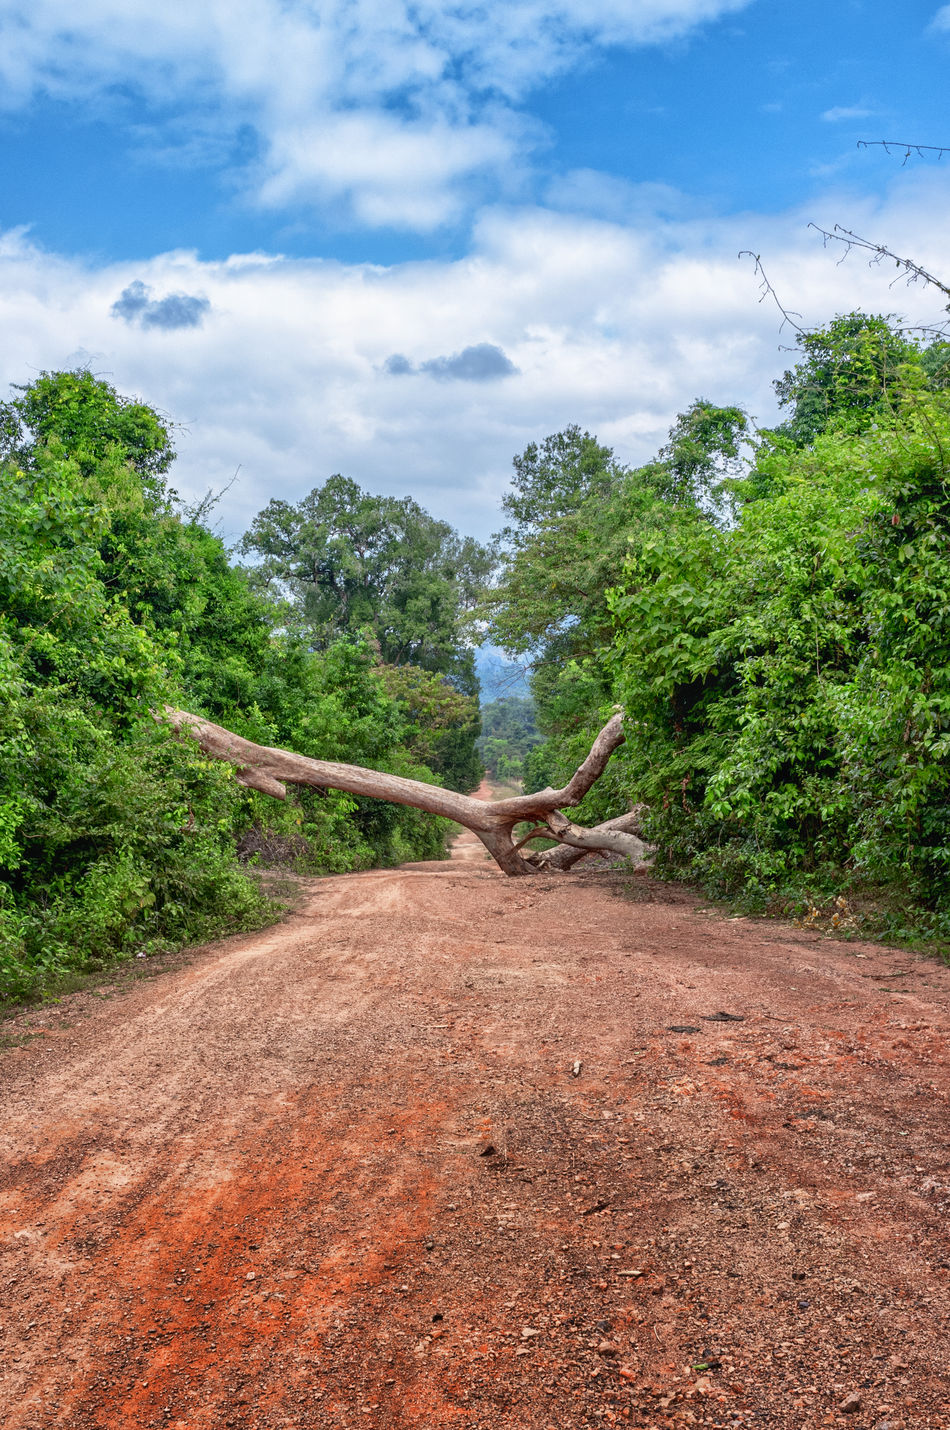 Adventure ASIA Blocked Cloud - Sky Day Diminishing Perspective Dirt Dirt Road Green Color Journey Laos Lost No People Obstacle Outdoors The Great Outdoors - 2016 EyeEm Awards Remote Road Sky Tha Khaek Loop The Way Forward Track Travel Tree Vanishing Point